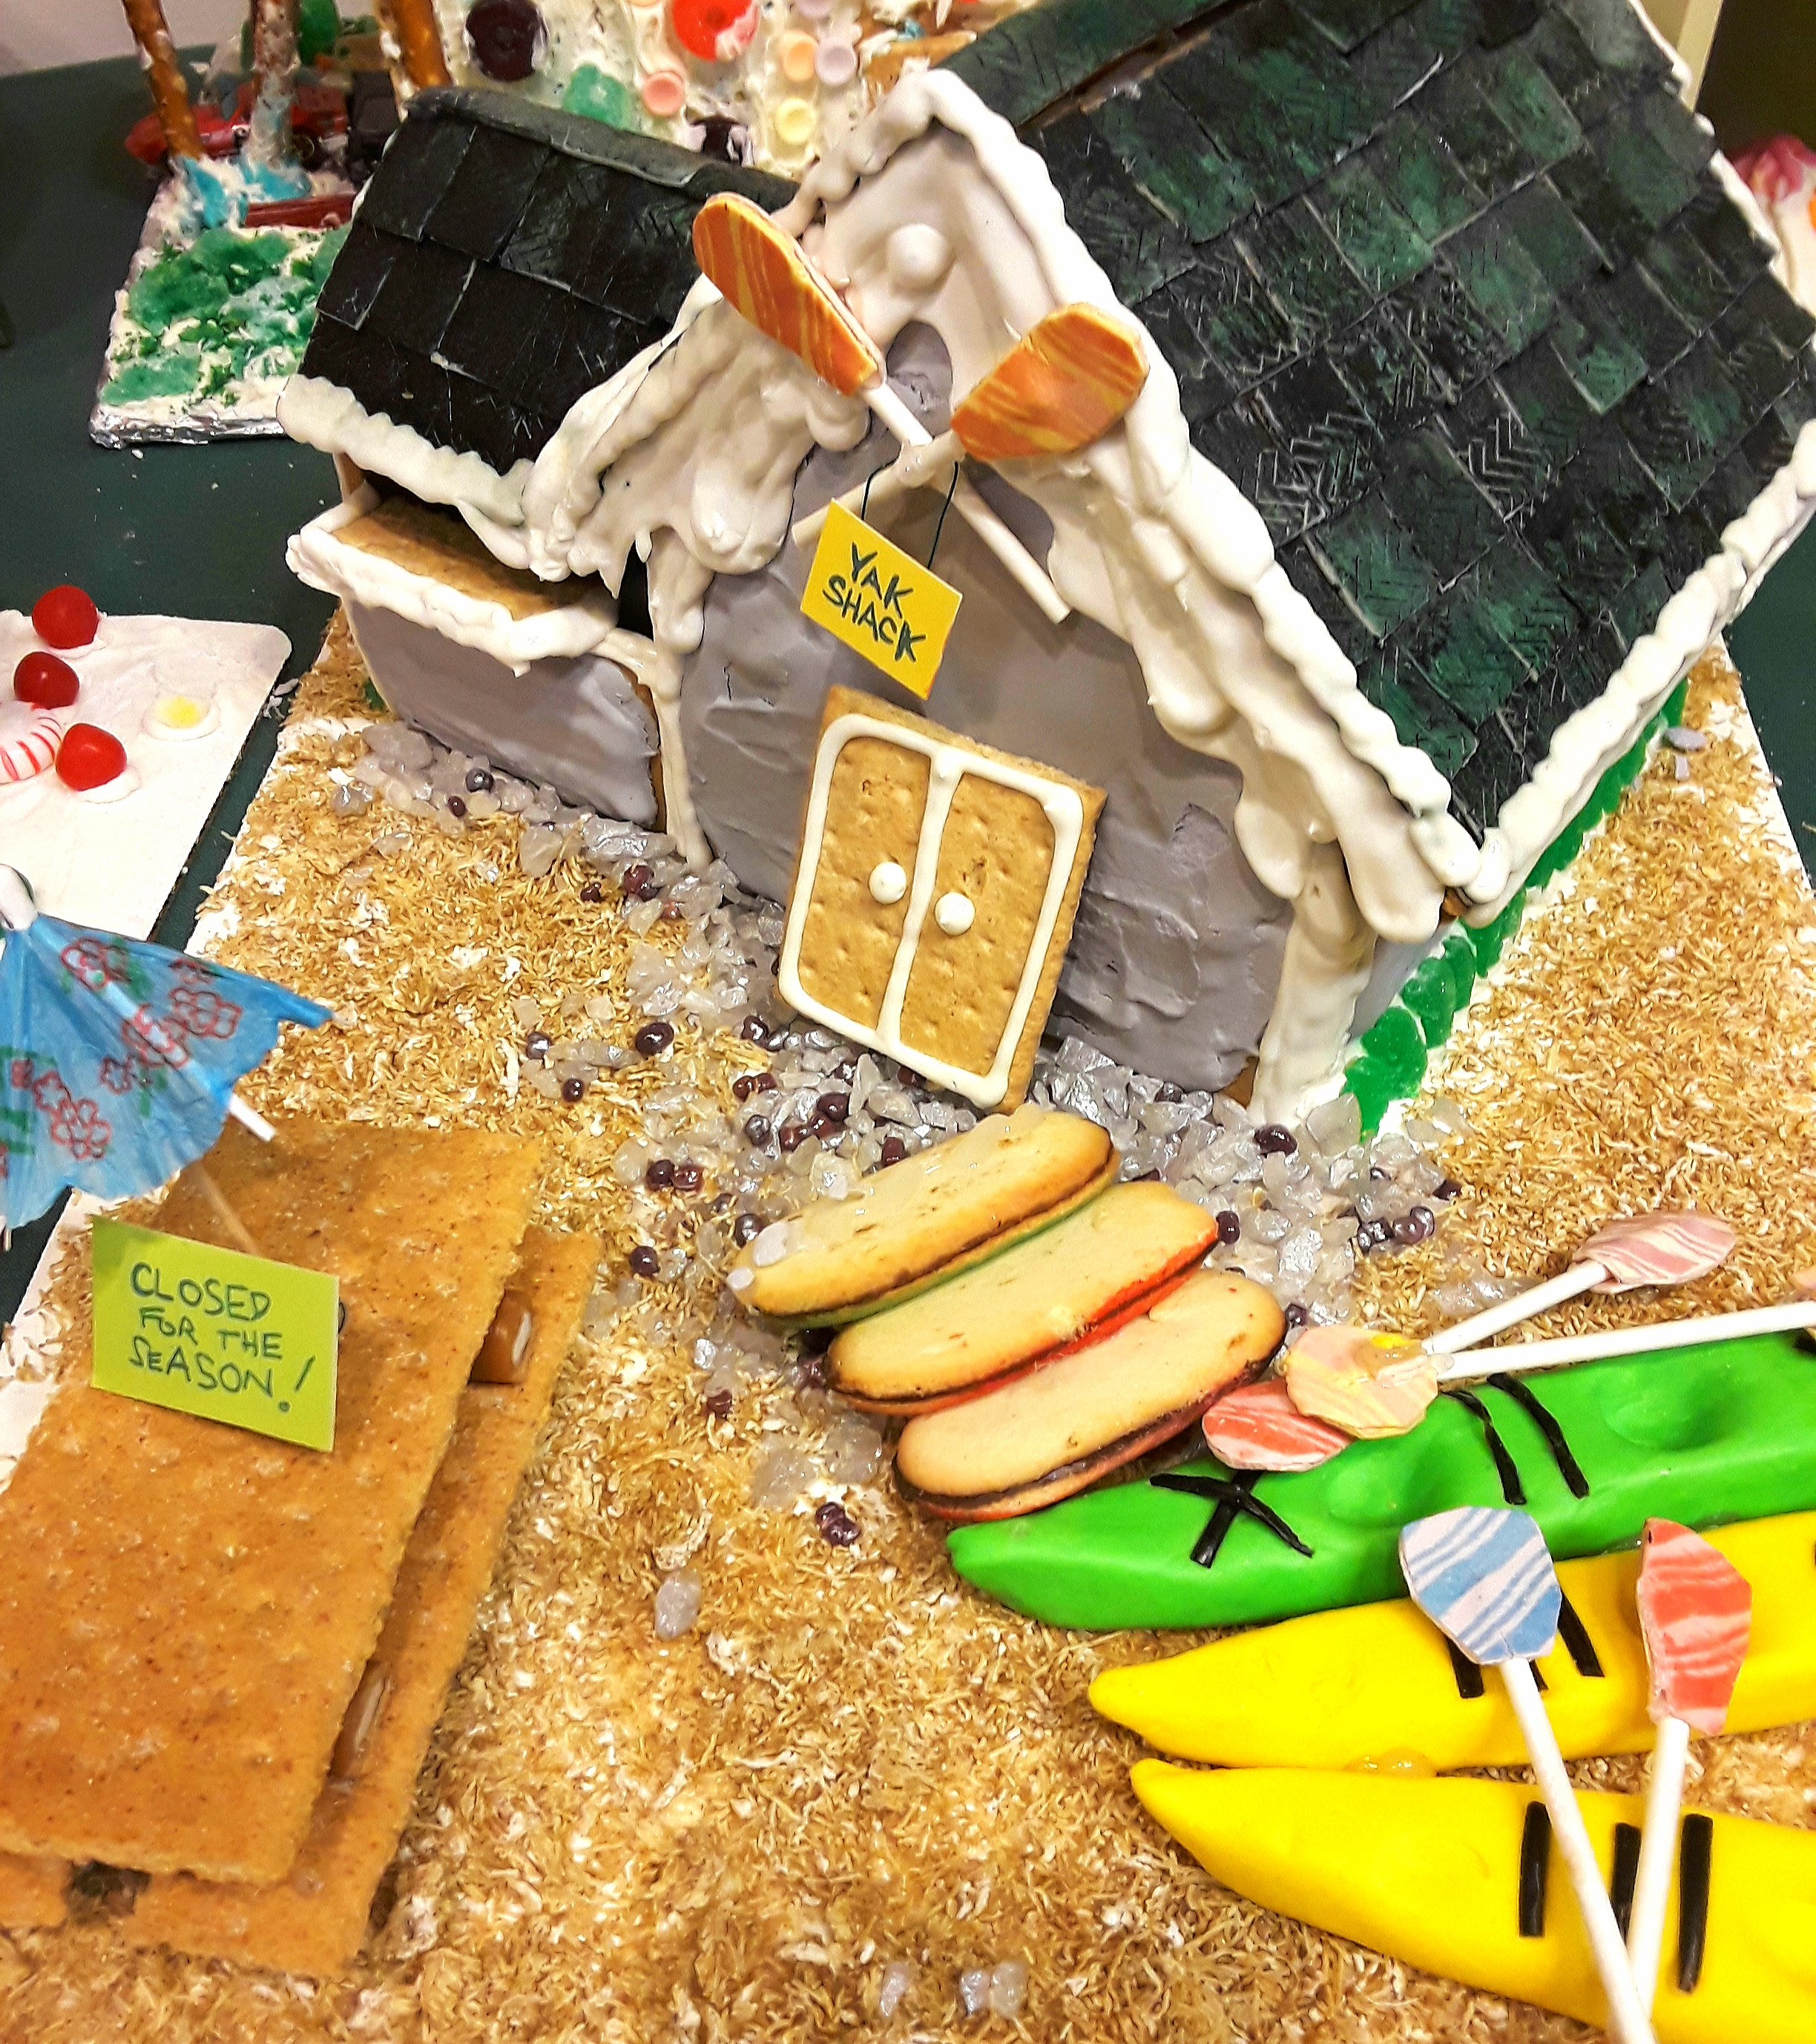 A gingerbread house decorated as a kayak rental center